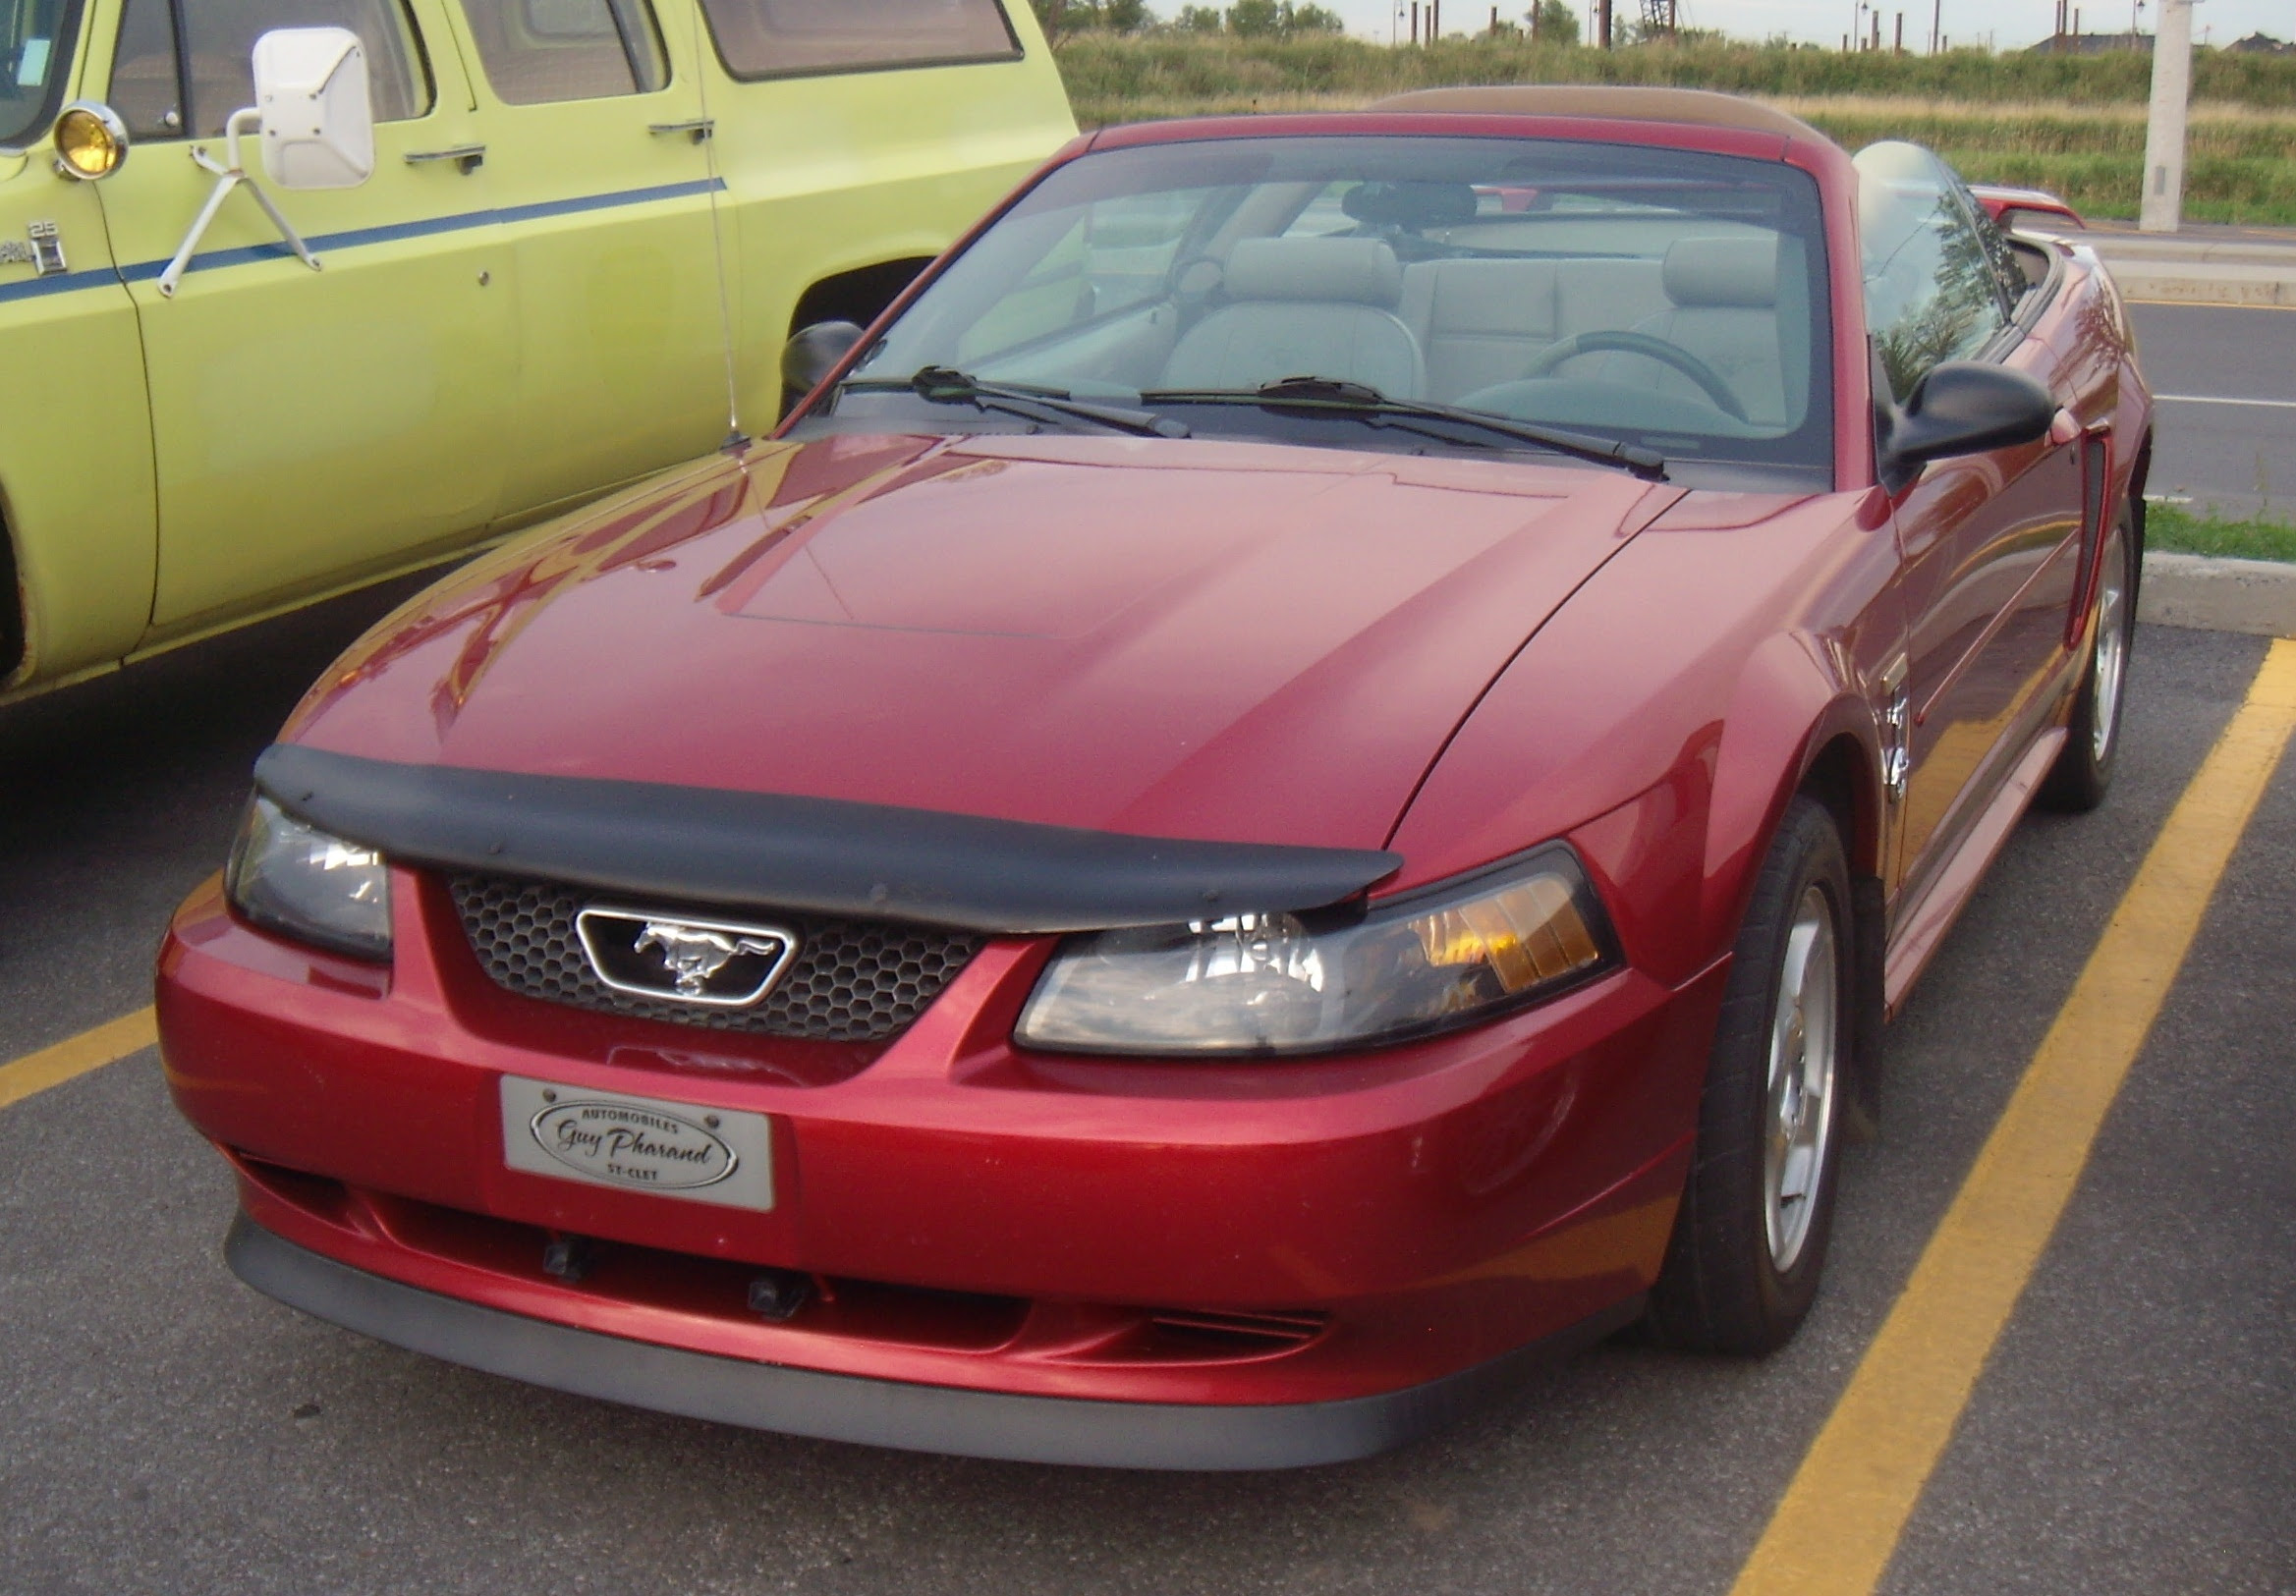 File:Ford Mustang Convertible SN95 (Auto classique Bellepros Vaudreuil ...